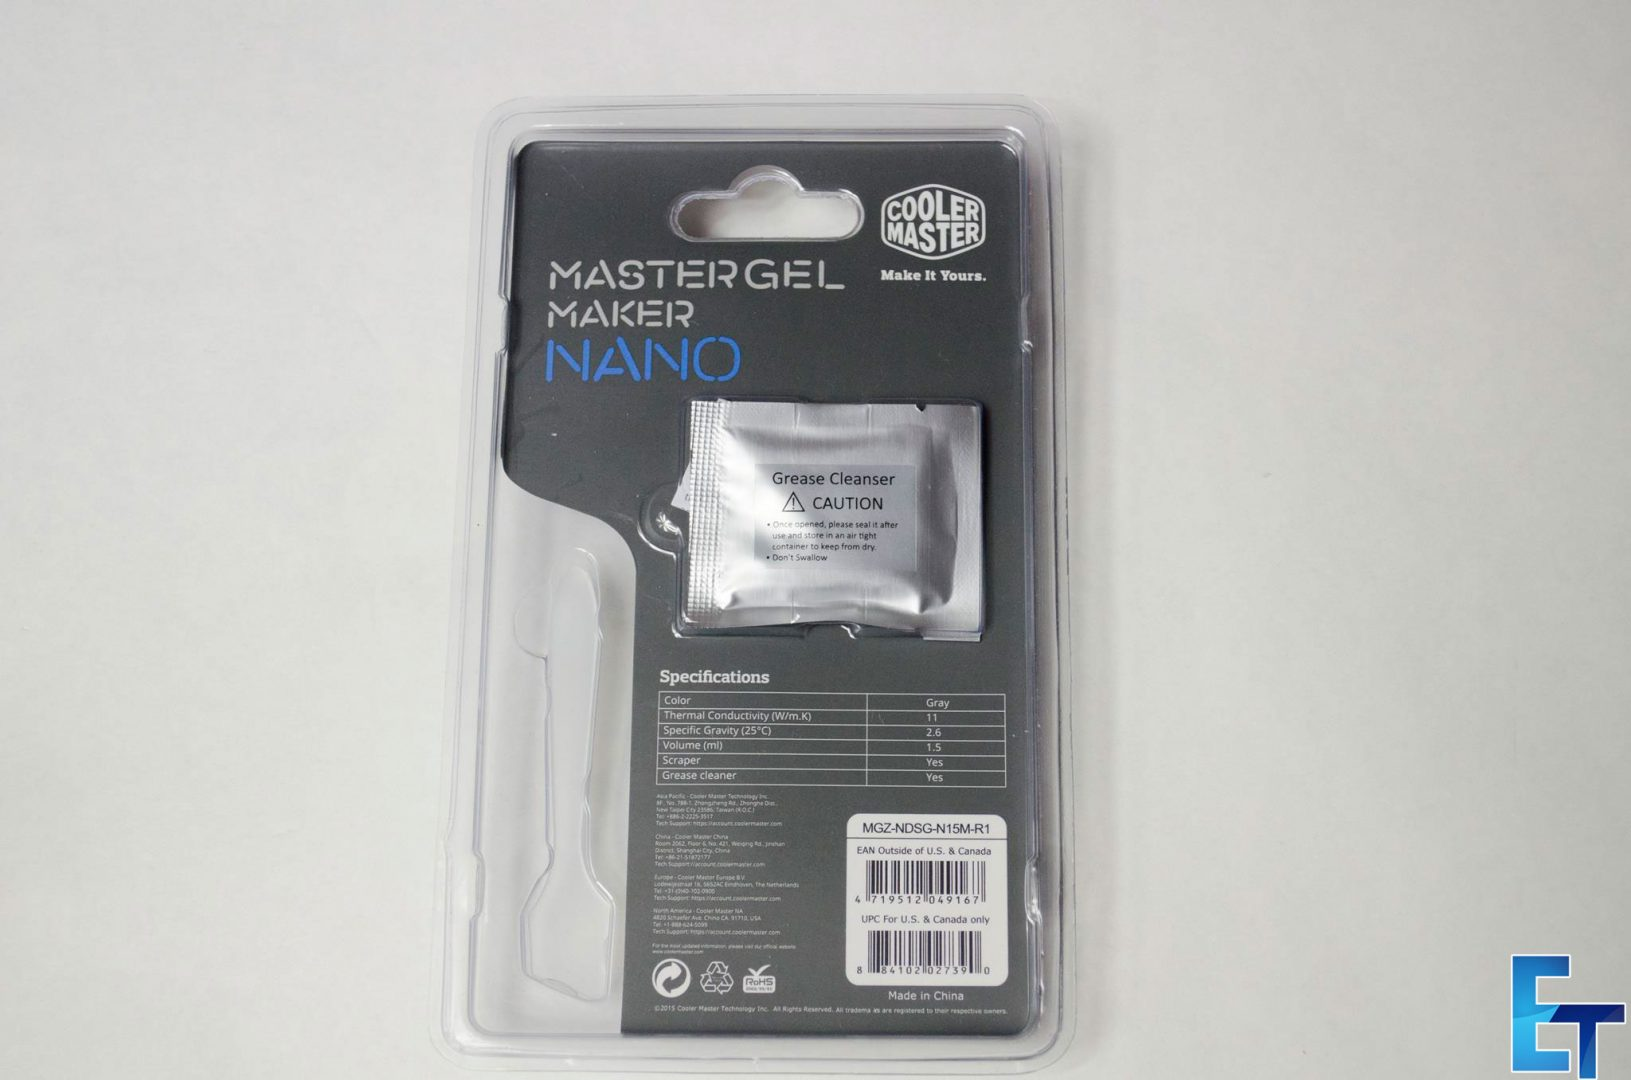 Cooler-Master-MasterGel-Maker-Nano-review_1